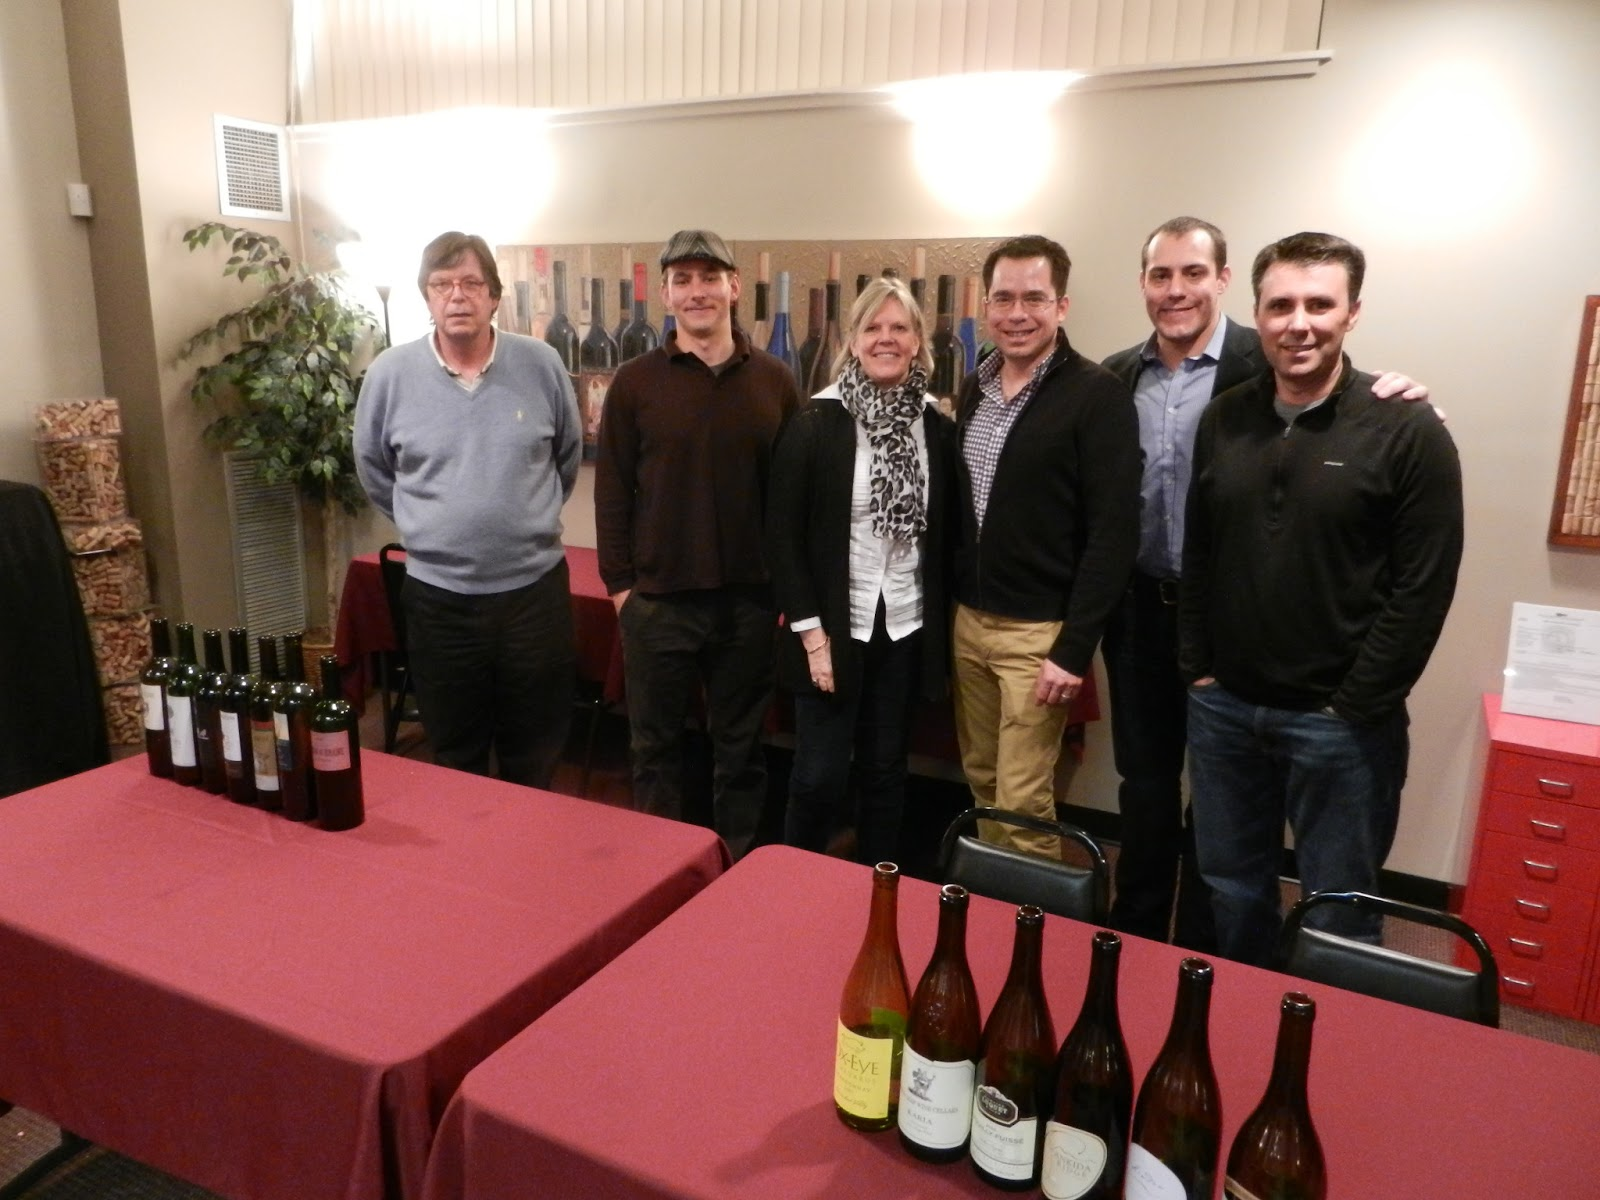 Picture: The Tasters   (from Left To Right) Christian Schiller  (schiller Wine) Isaac James Baker (Reading, Writing And Wine) Annette  Schiller (Ombiasy Wine ...